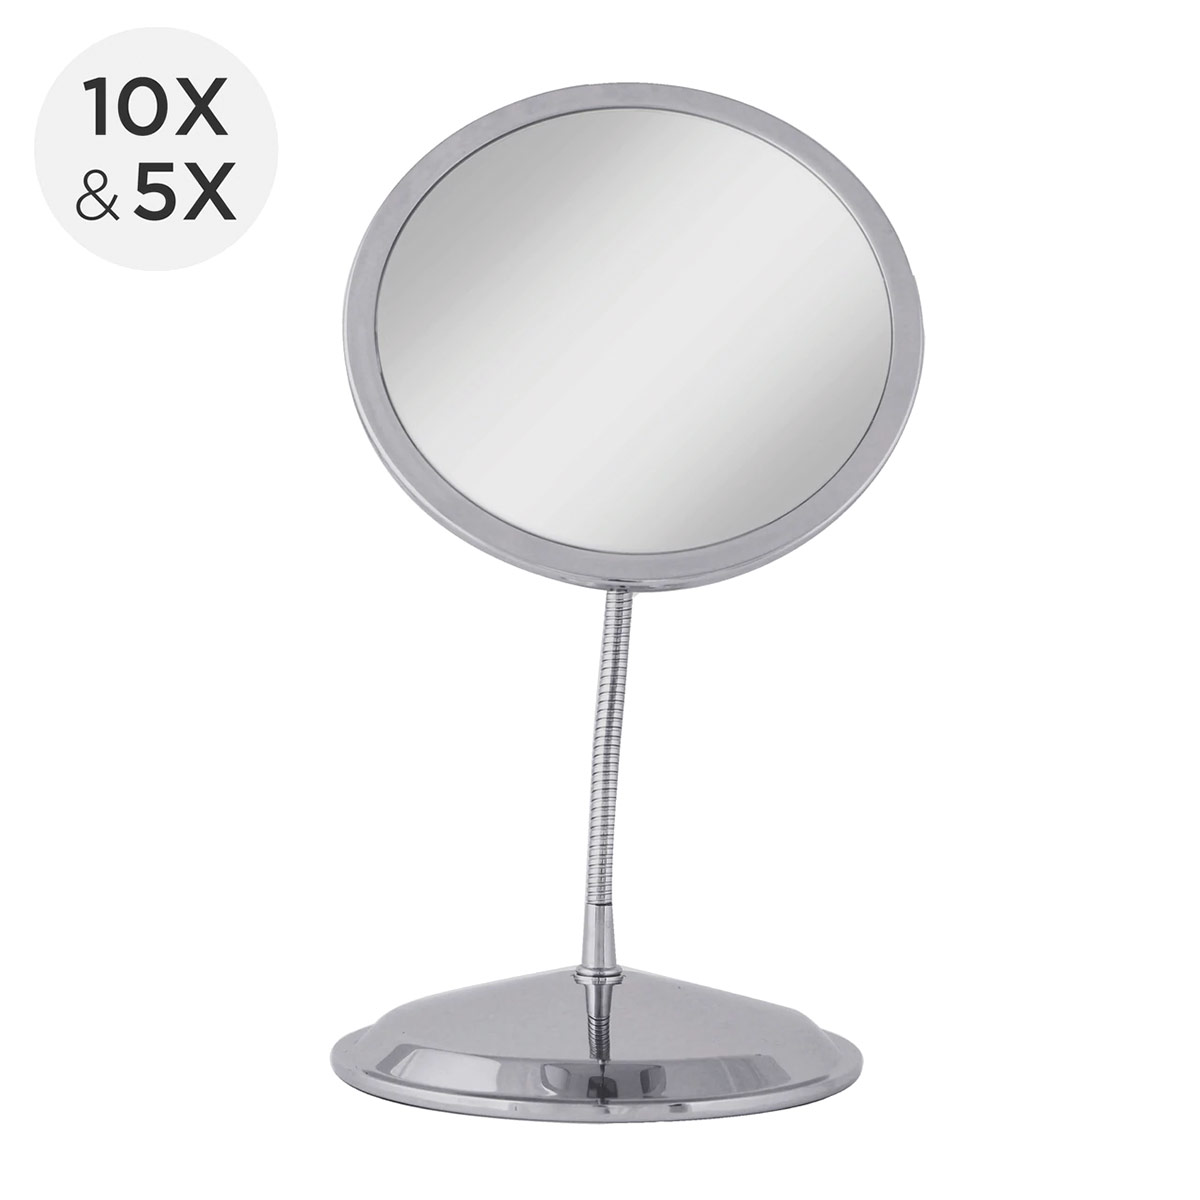 Zadro Double Vision Vanity and Suction Cup Mirror Price: $30.99